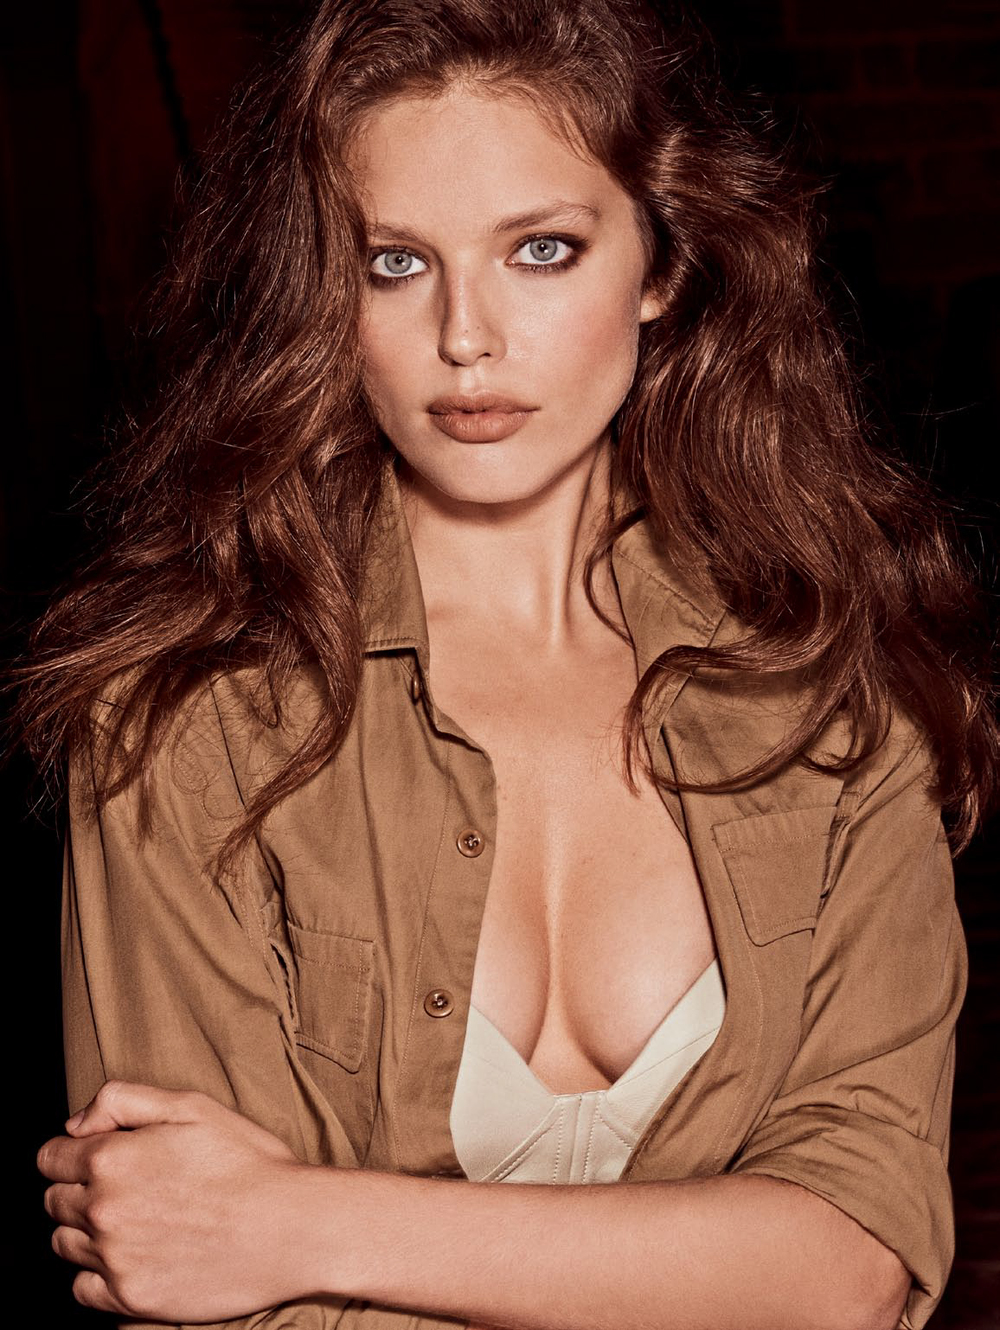 11-vogue-russia-may-2015-emily-didonato-jarrod-scott-mariano-vivanco.jpg